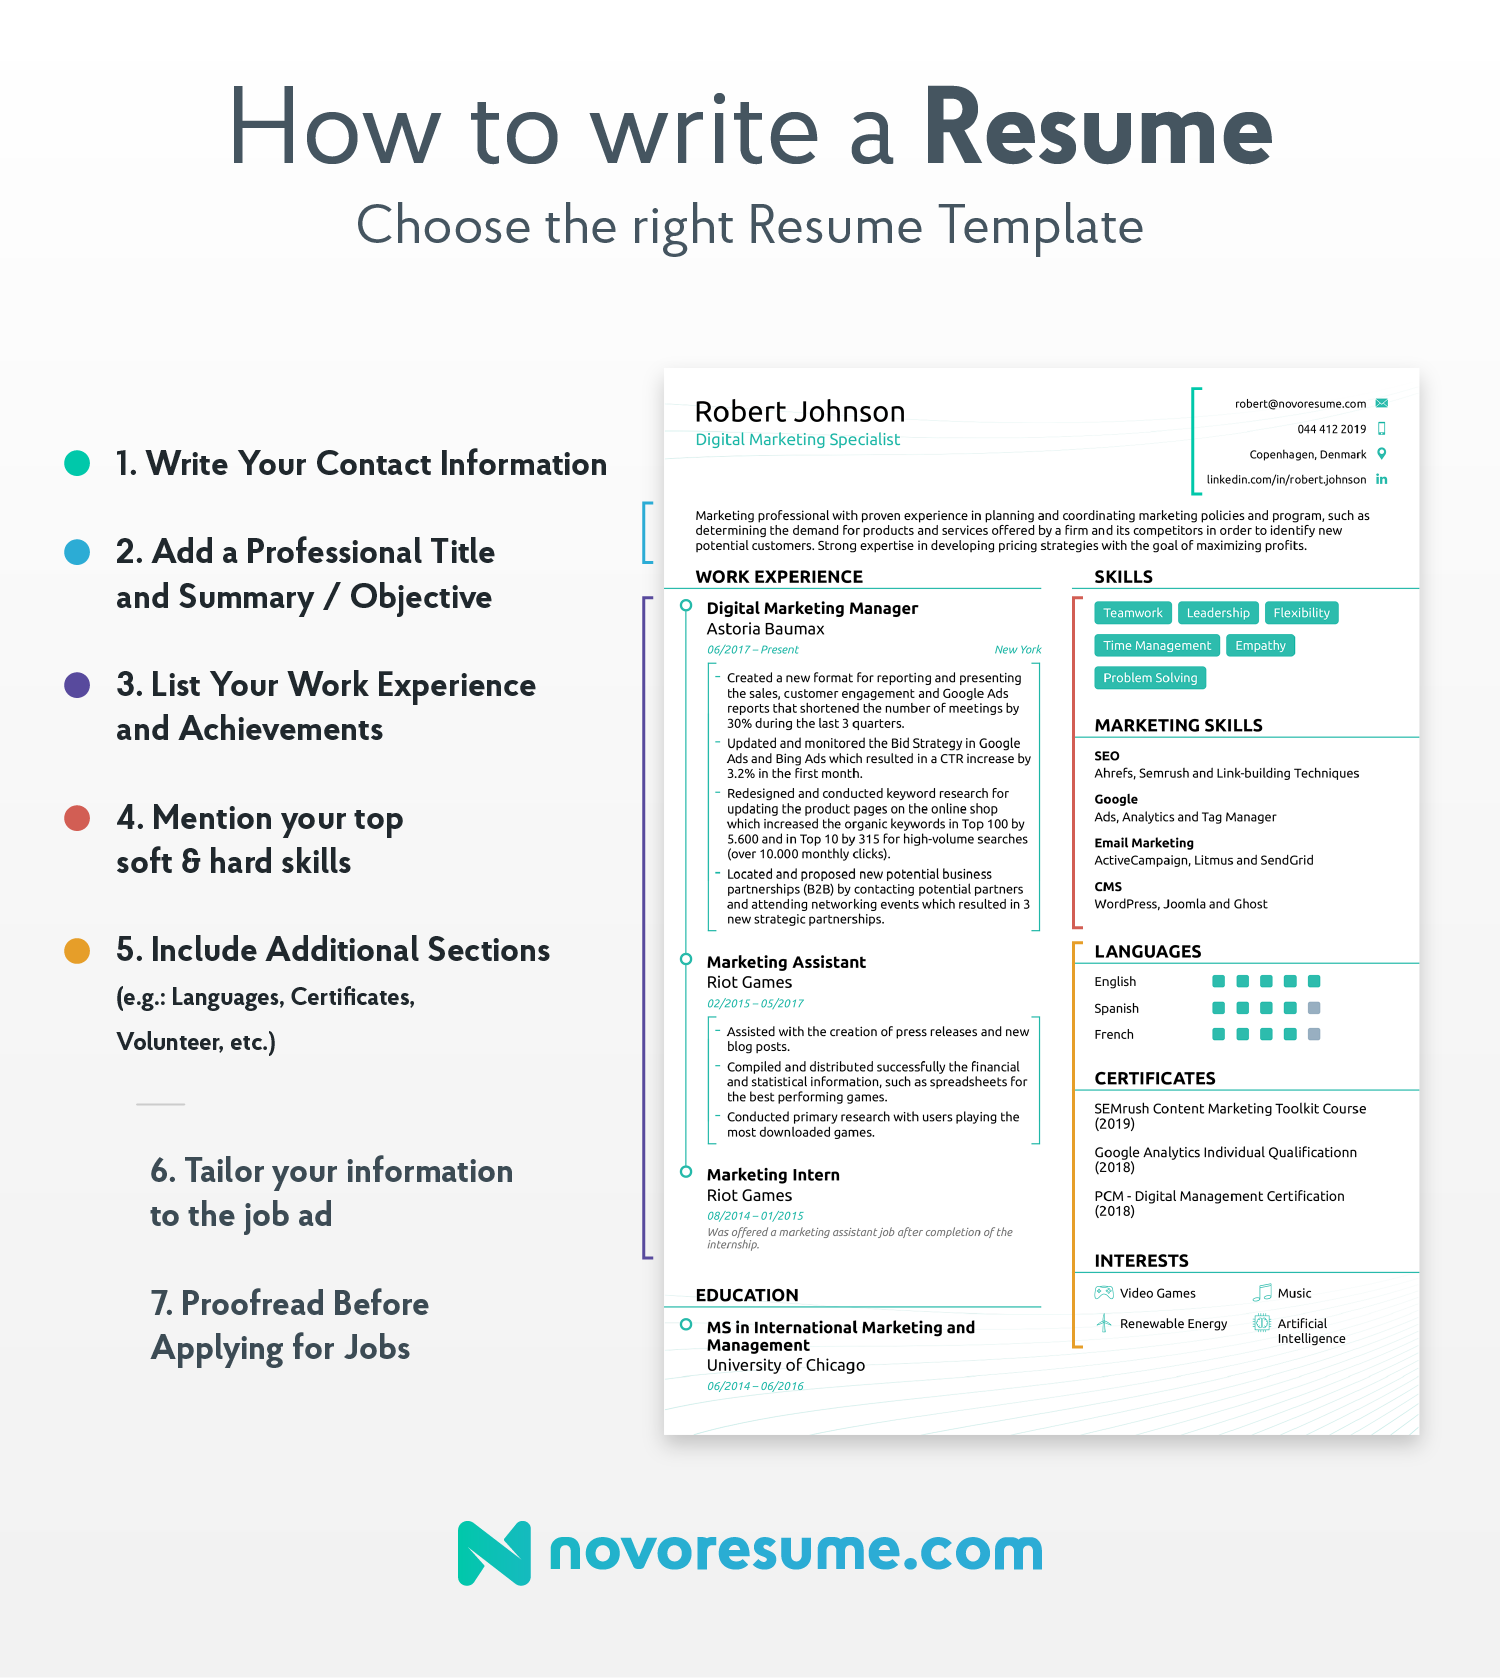 How To Write Resume Letter.How To Write A Resume 2019 Beginner S Guide Novoresume